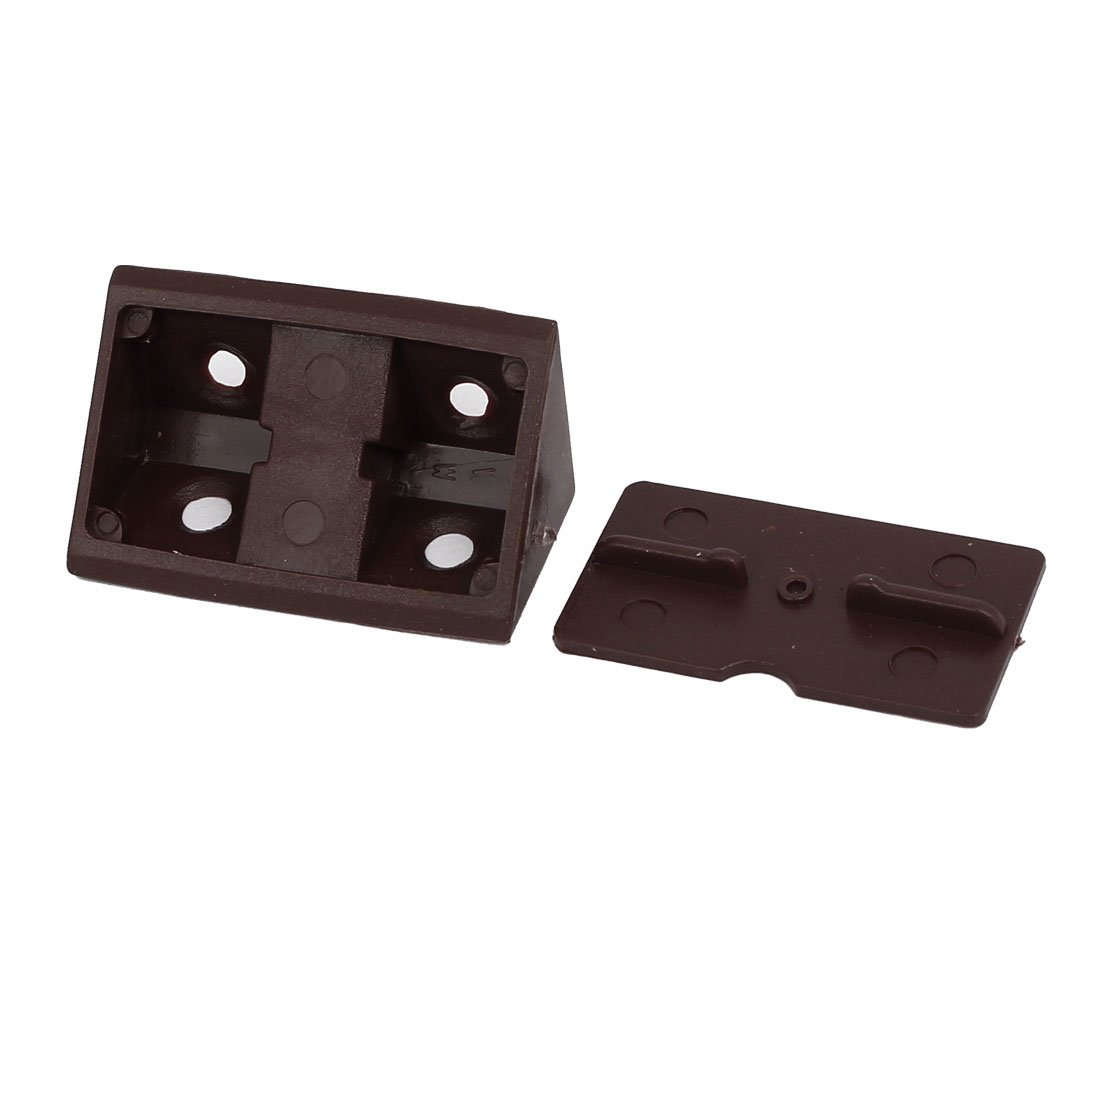 Shelf Cabinet Door 90 Degree 4 Holes Angle Brackets with Cover Cap Black sourcing map Plastic Corner Braces Pack of 20